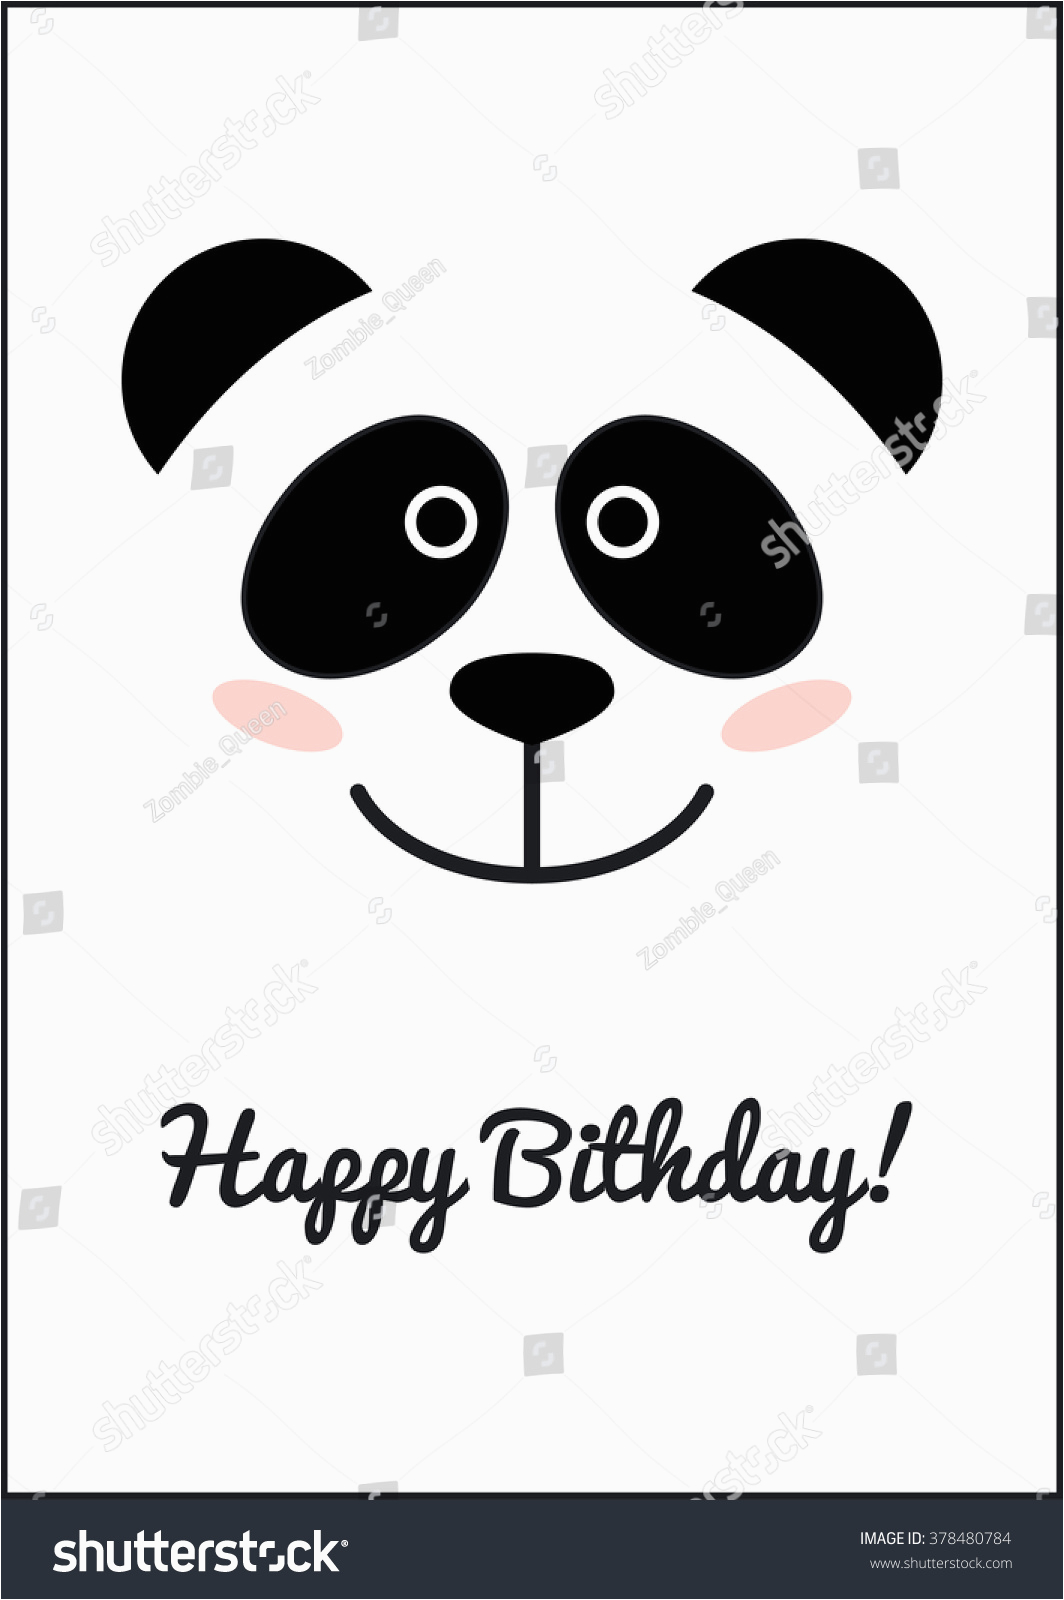 stock vector panda face birthday card template cute design cute vector panda vector animals